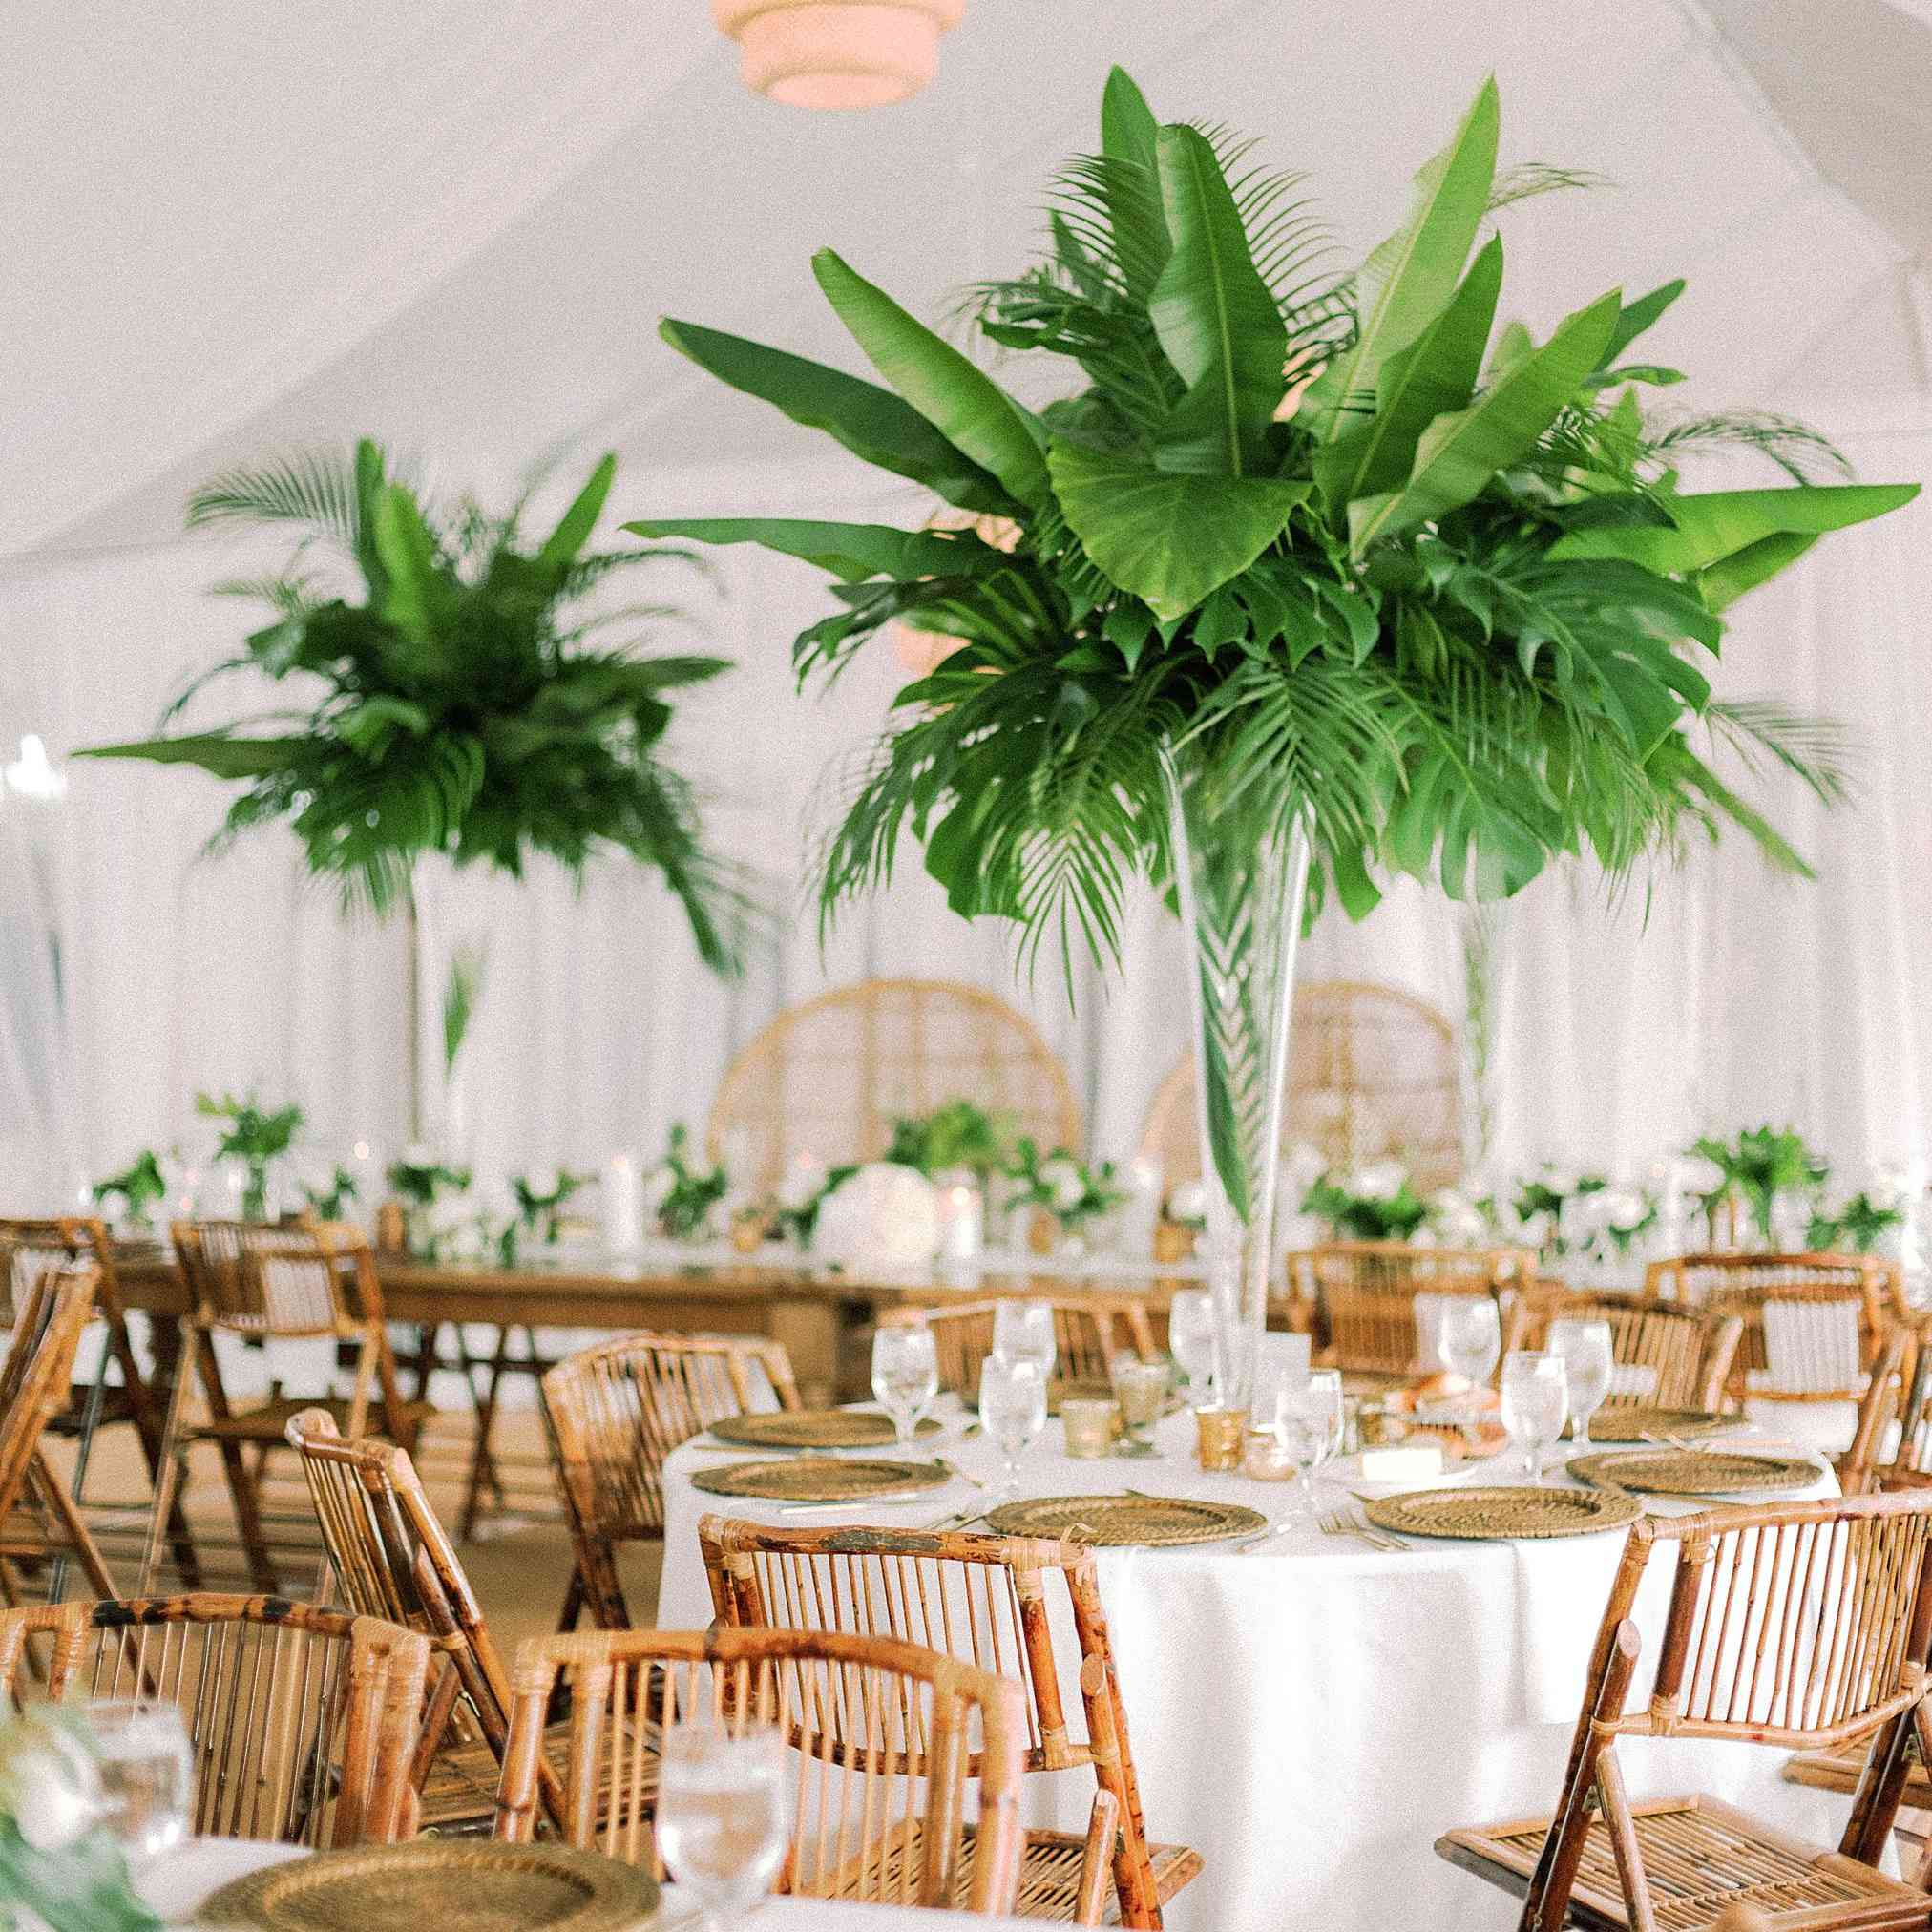 Dining room with palm leaf decorations